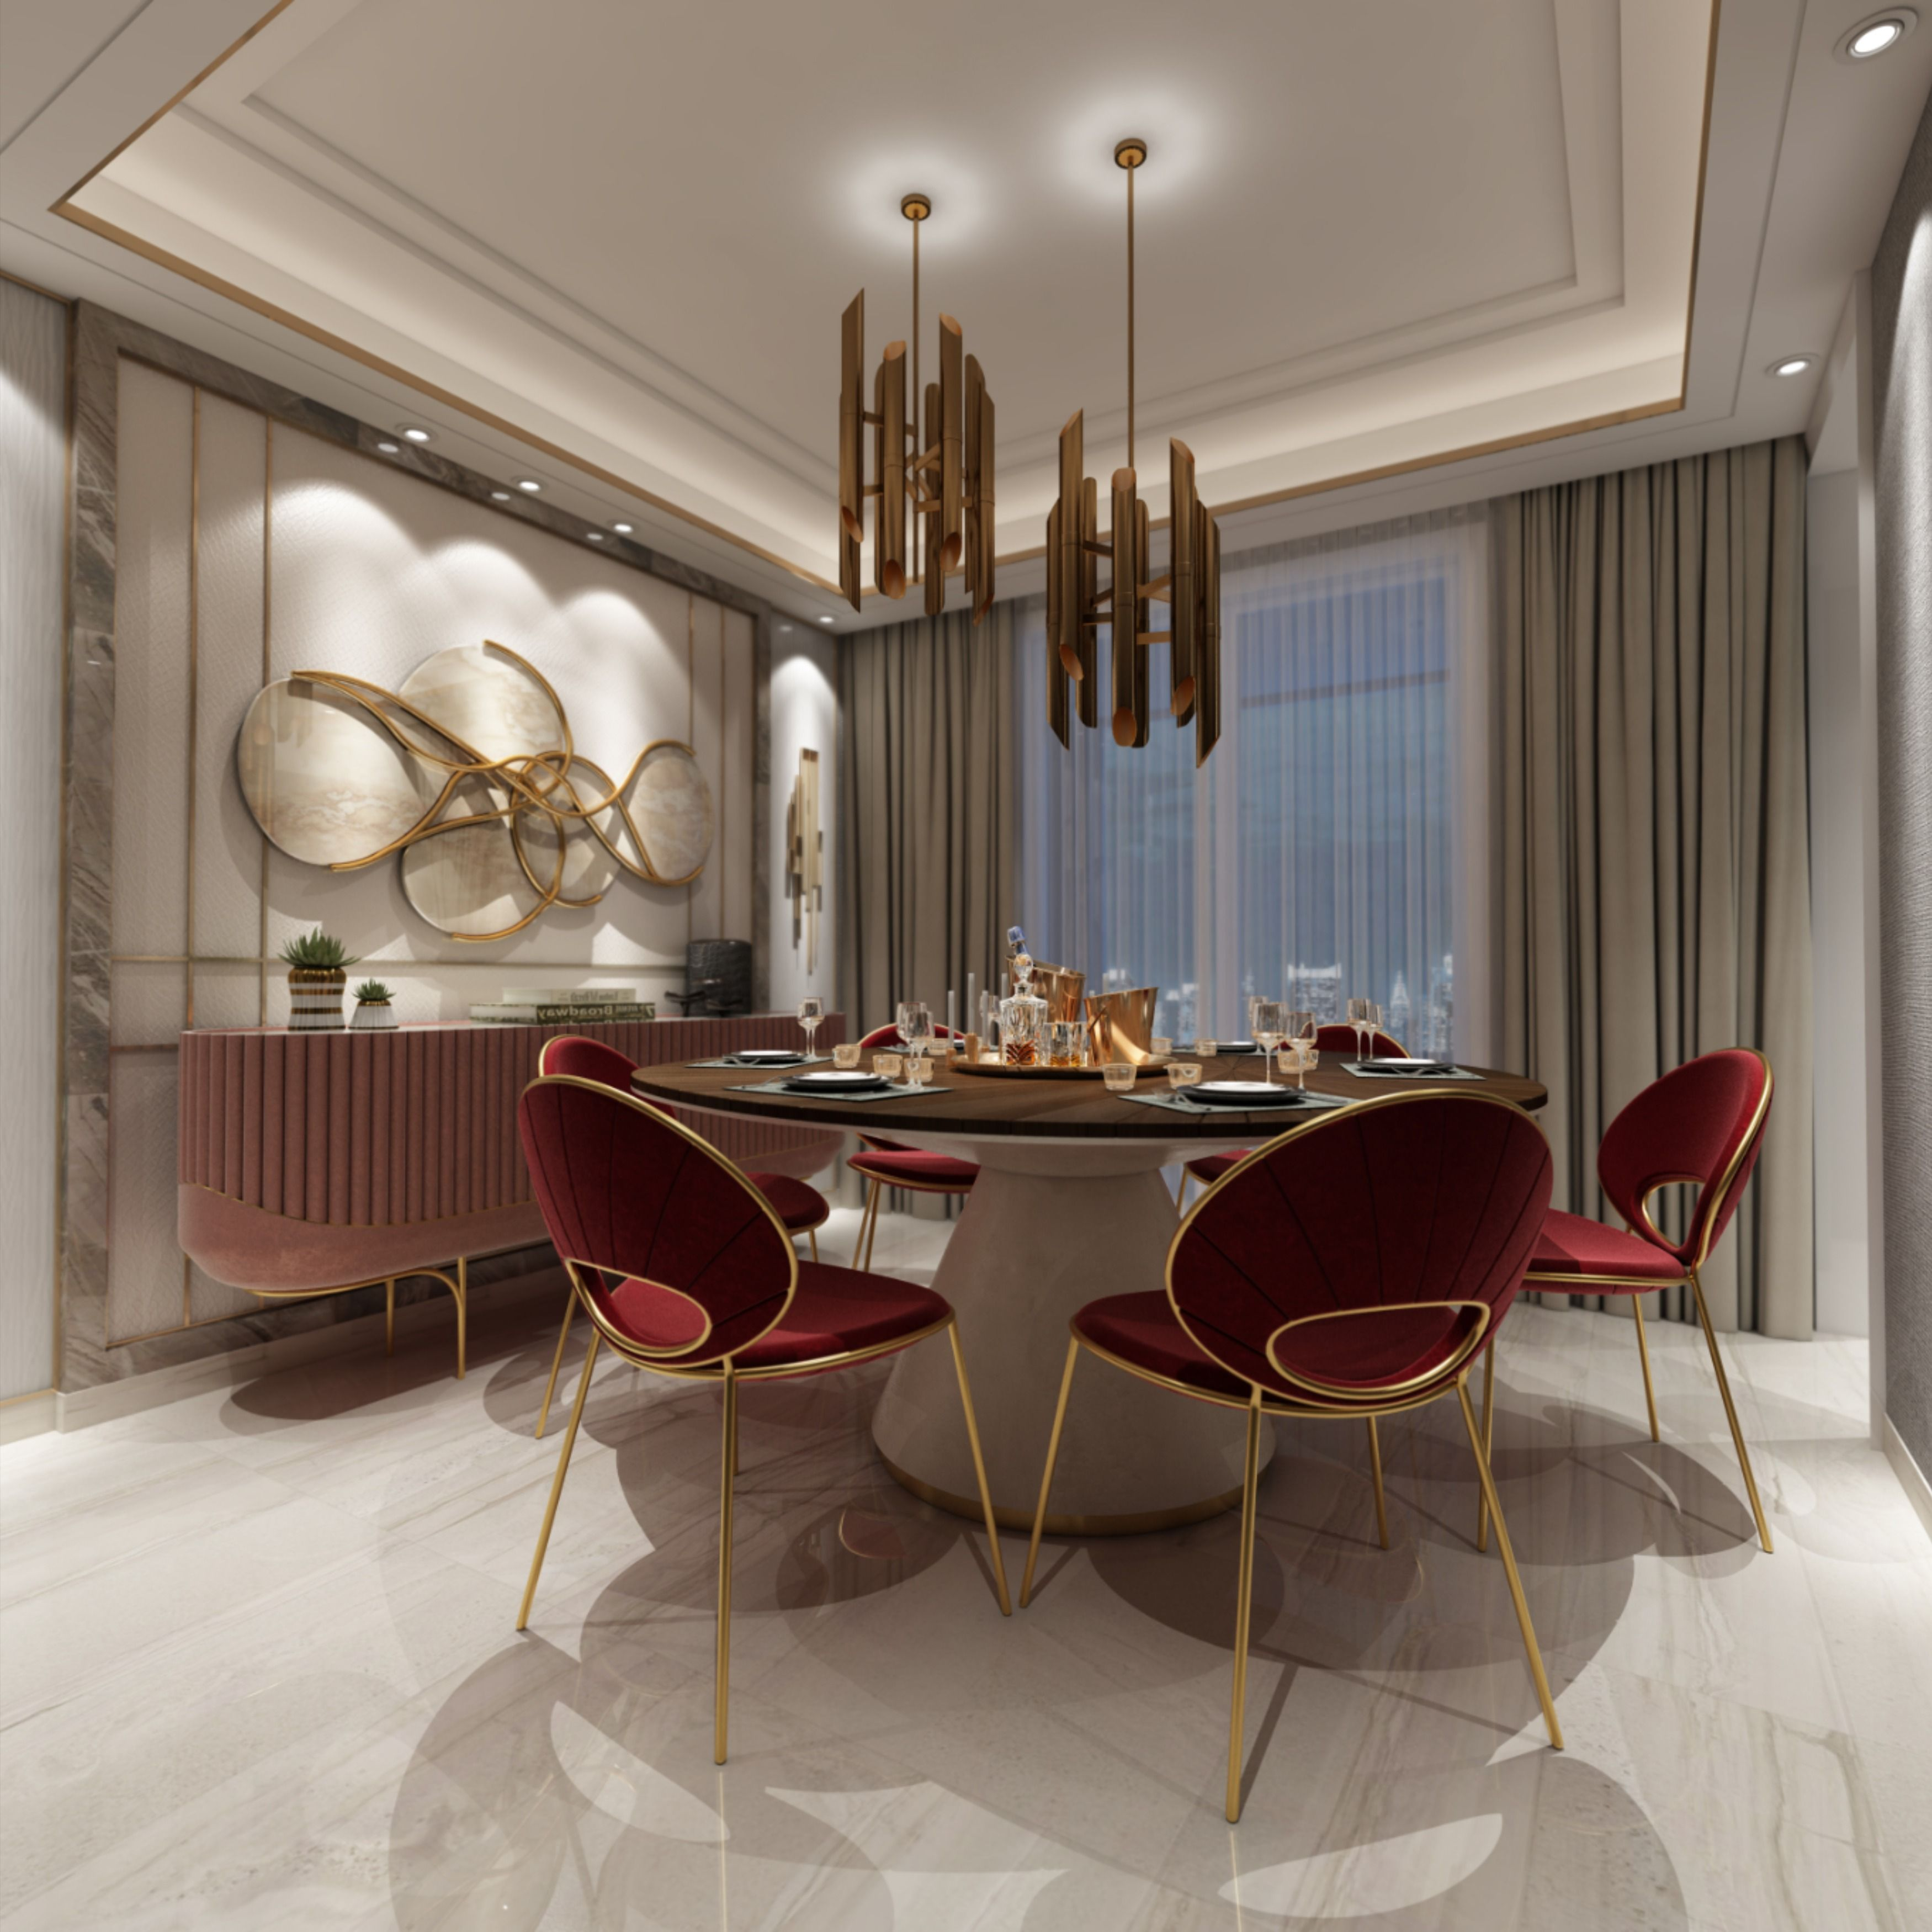 126 Custom Luxury Dining Room Interior Designs: Inspiration & Ideas For Exclusive Chairs In 2020